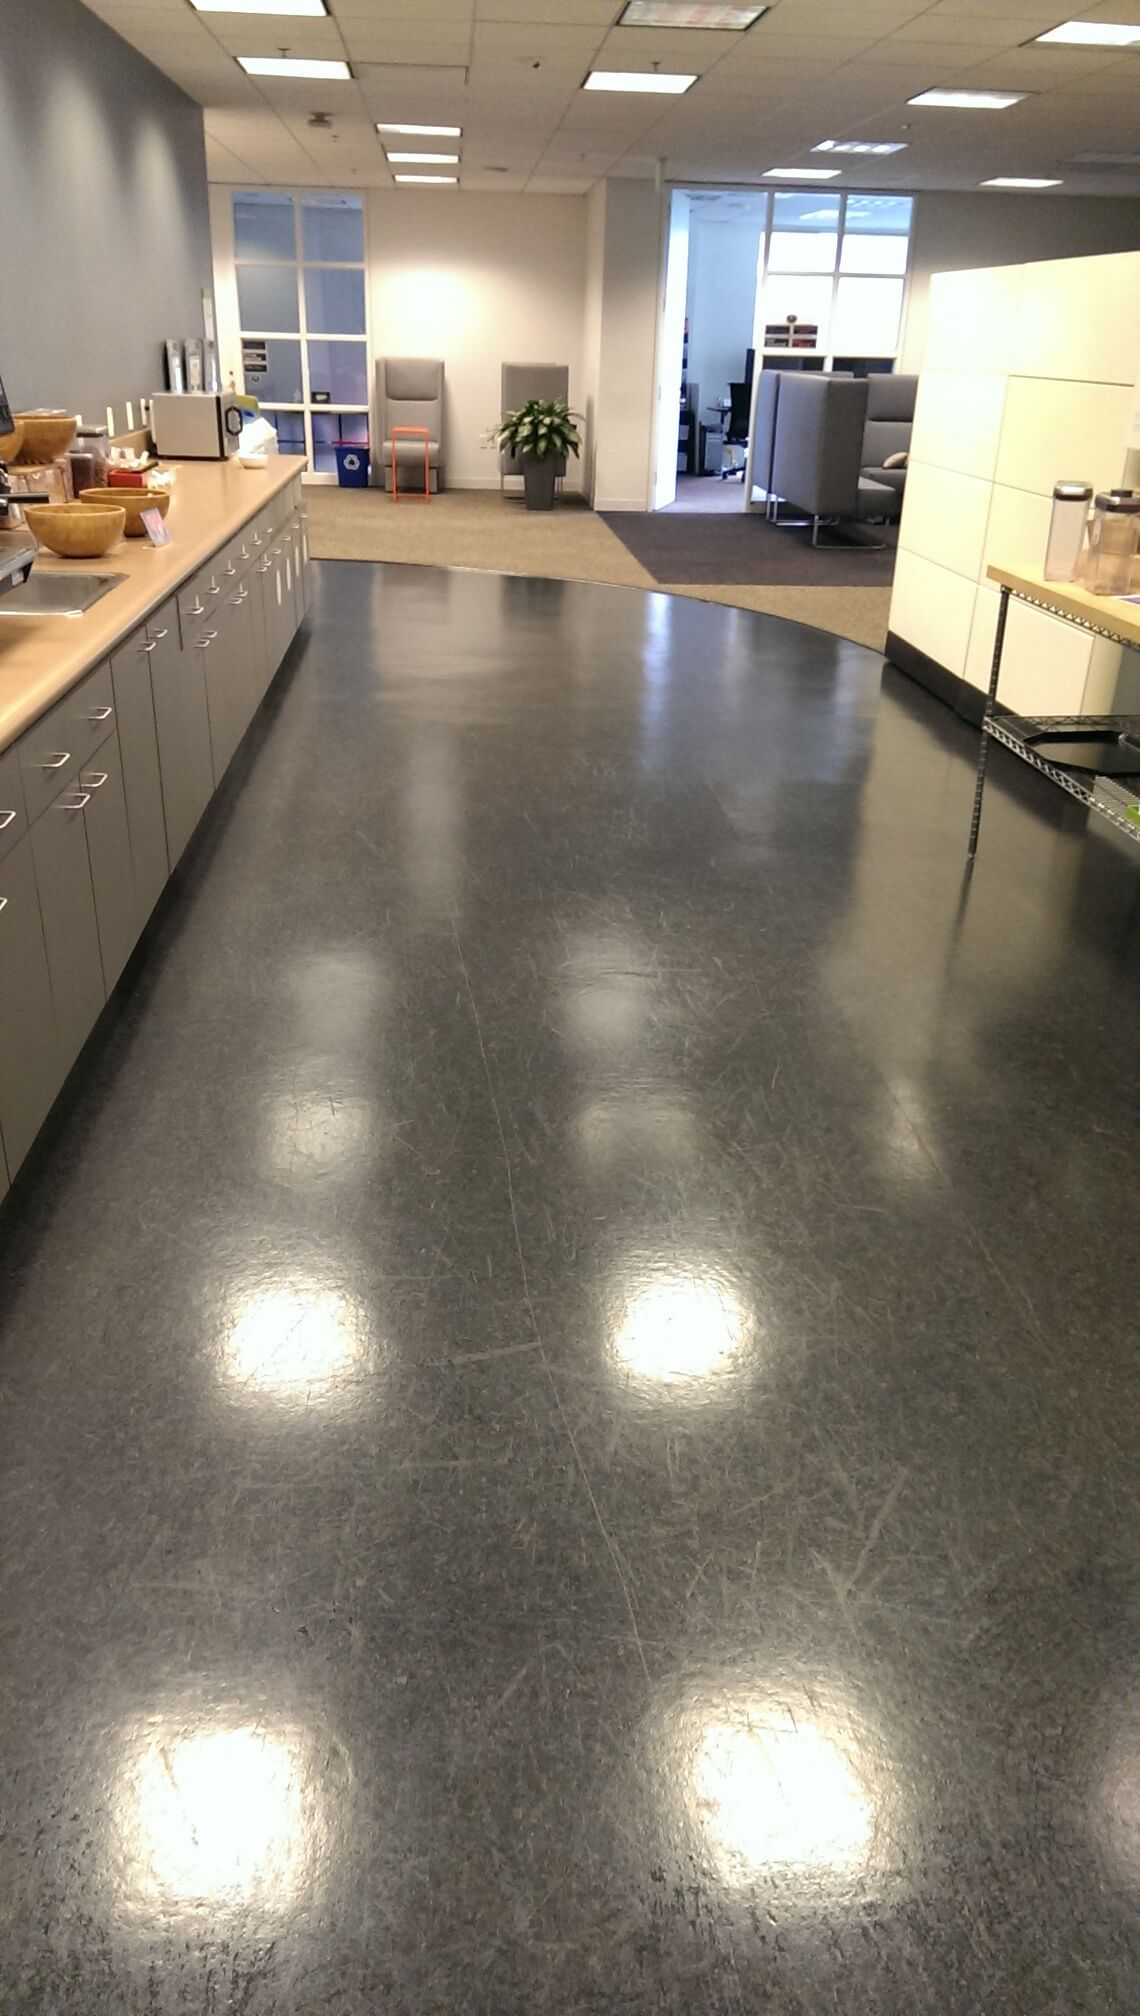 Floor cleaning company in Salinas